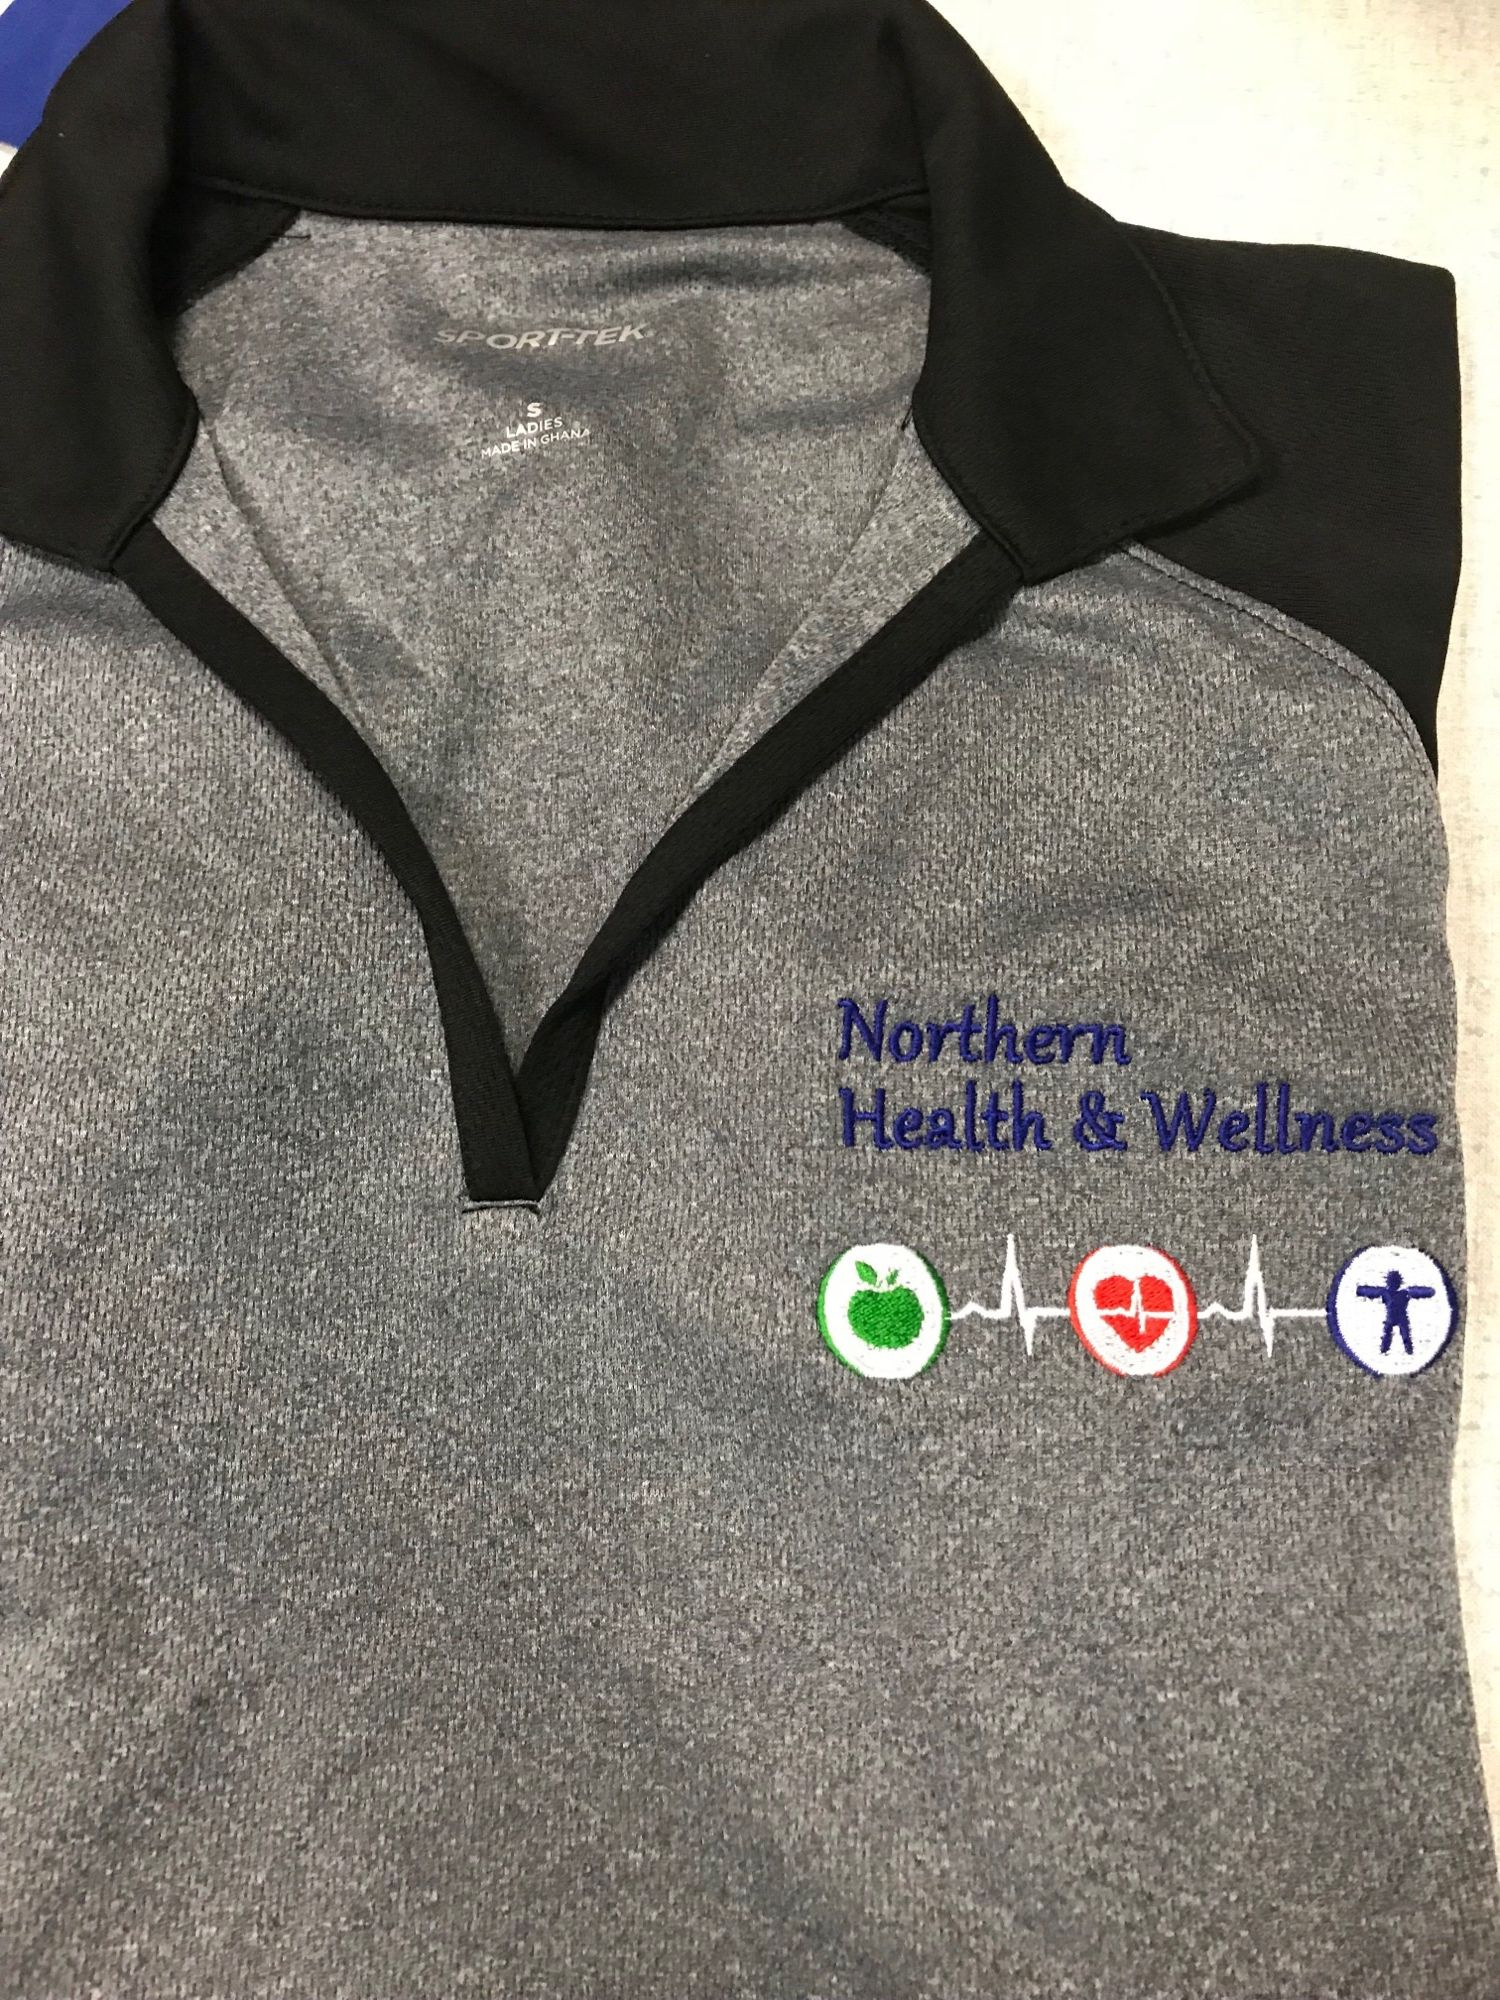 Allow Us To Help You With Your Logo Embroidered Business Uniforms Sport Tek Polo Shirt Wholesale T Shirts © 2020 sporting wholesale ltd. pinterest